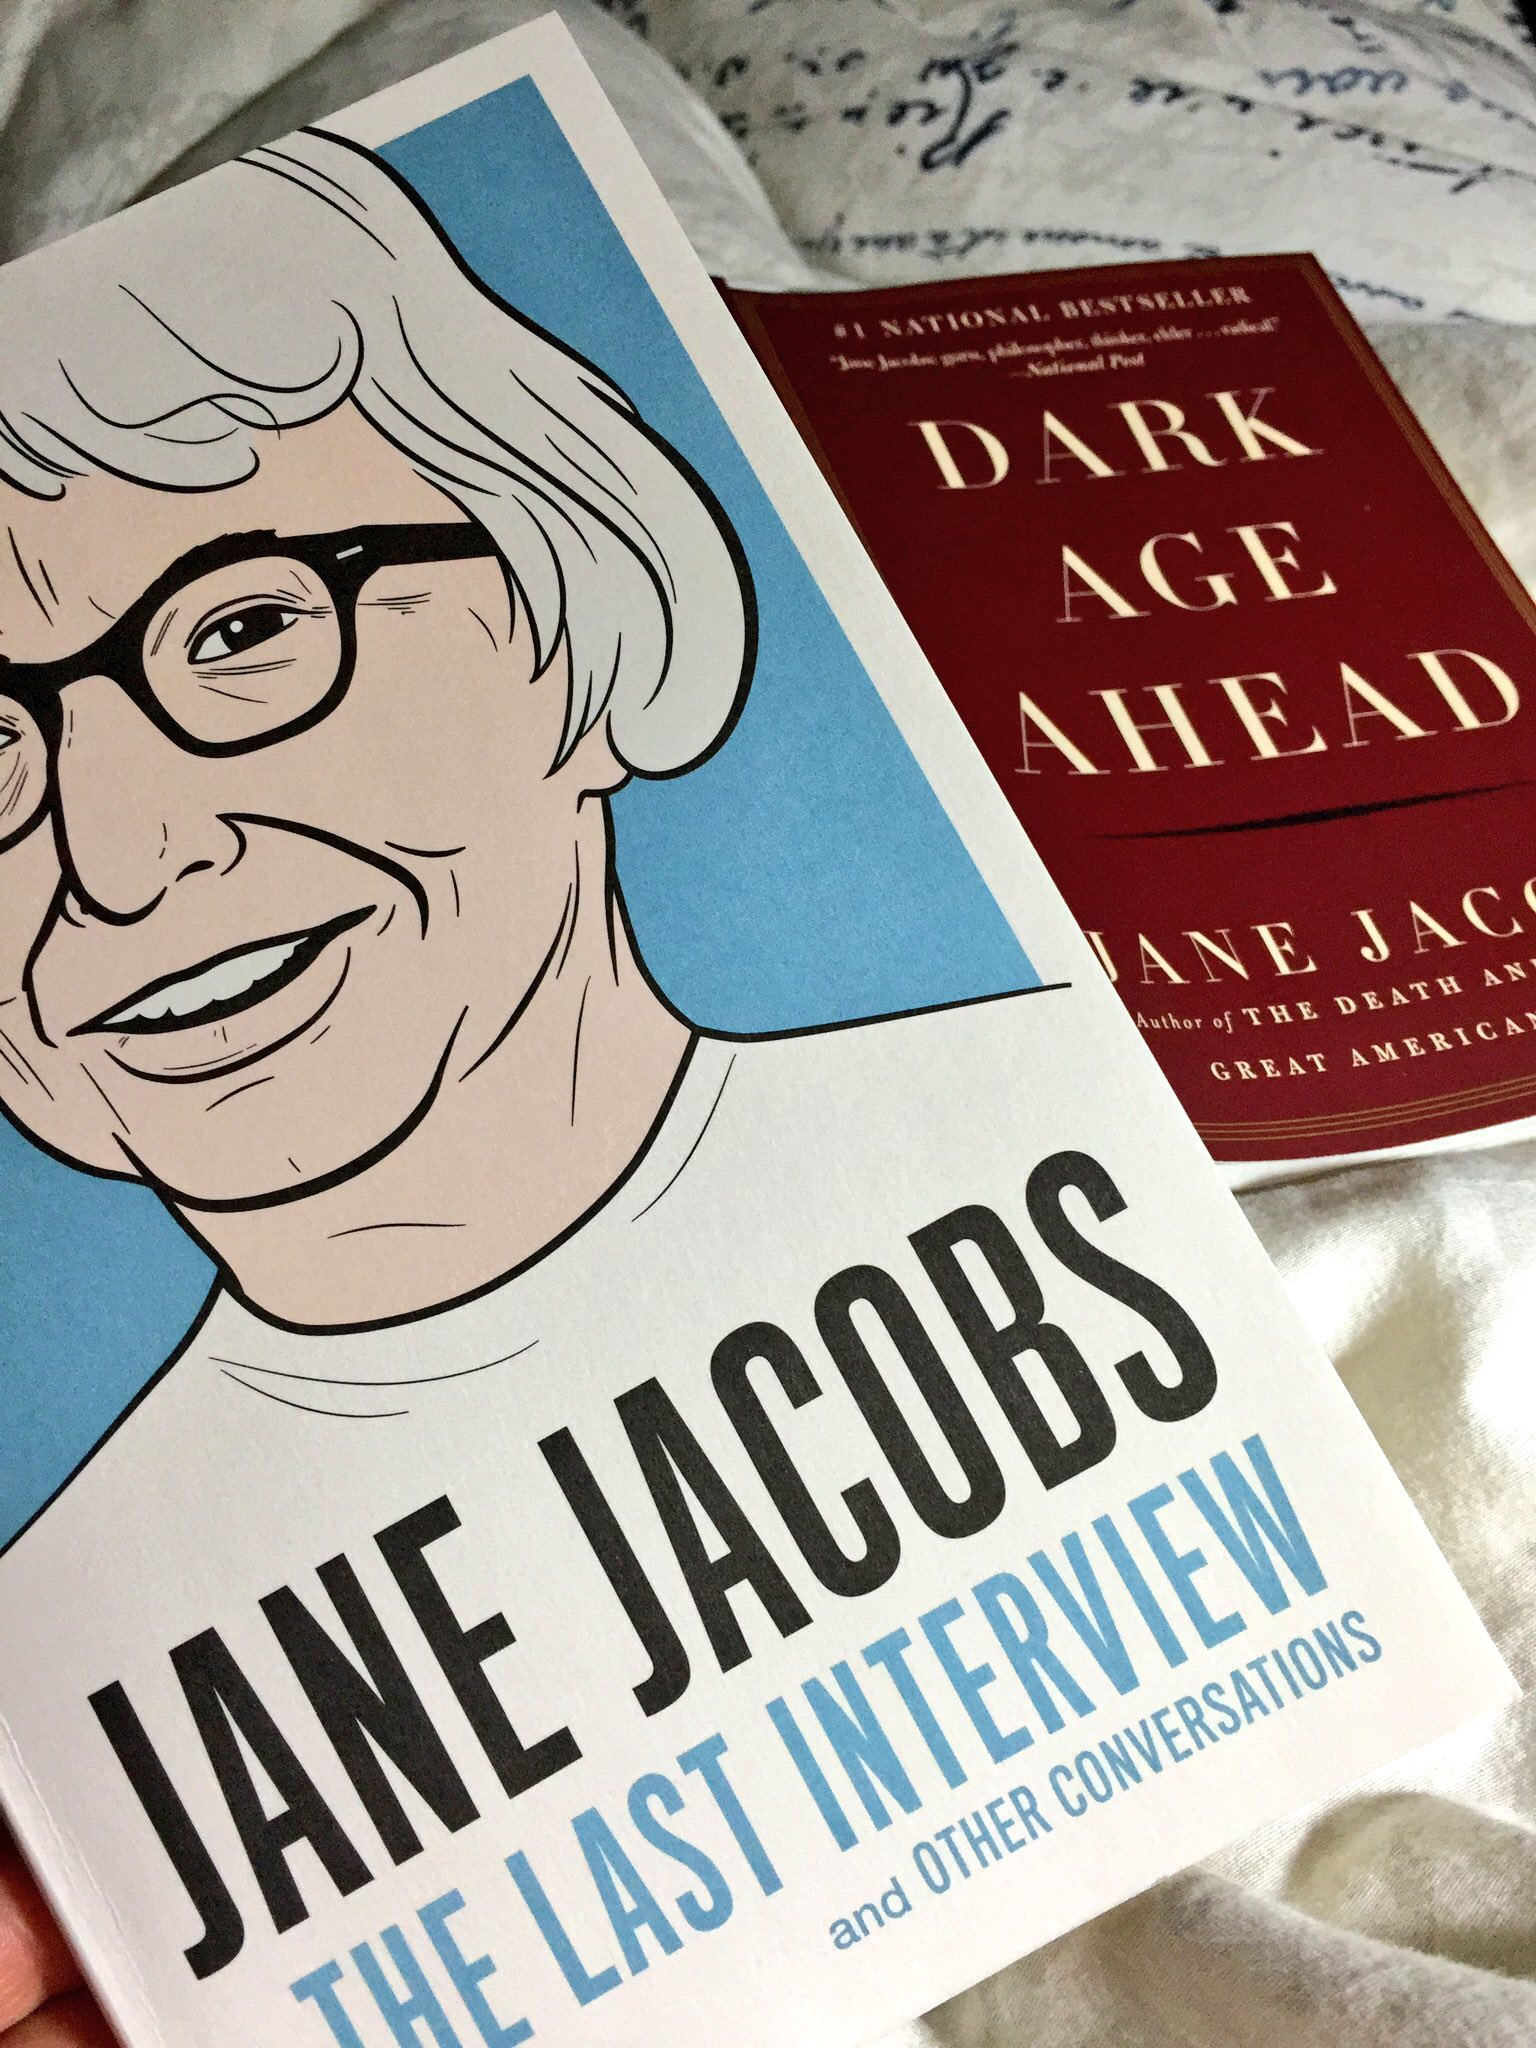 Jane Jacobs 2 Picture